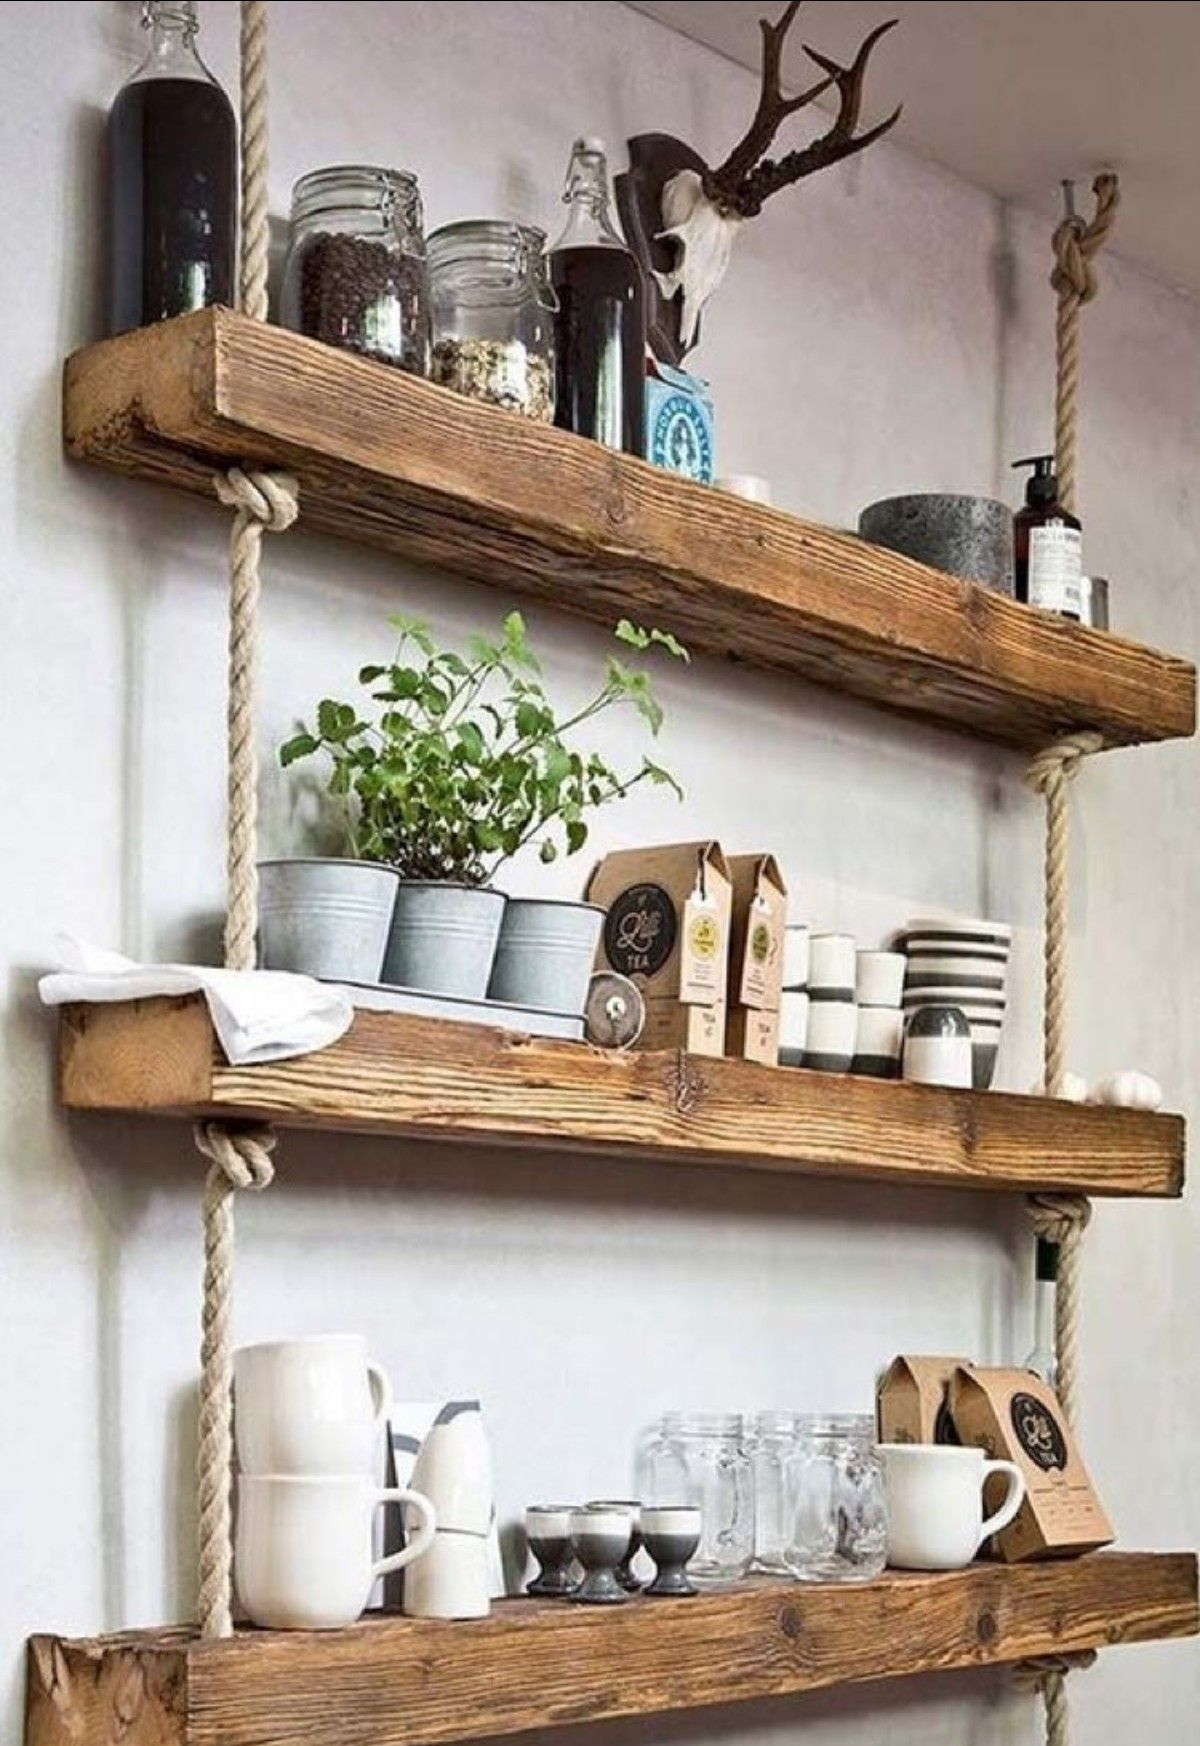 Would Build As Floating Shelves For Stability And Use The Ropes As